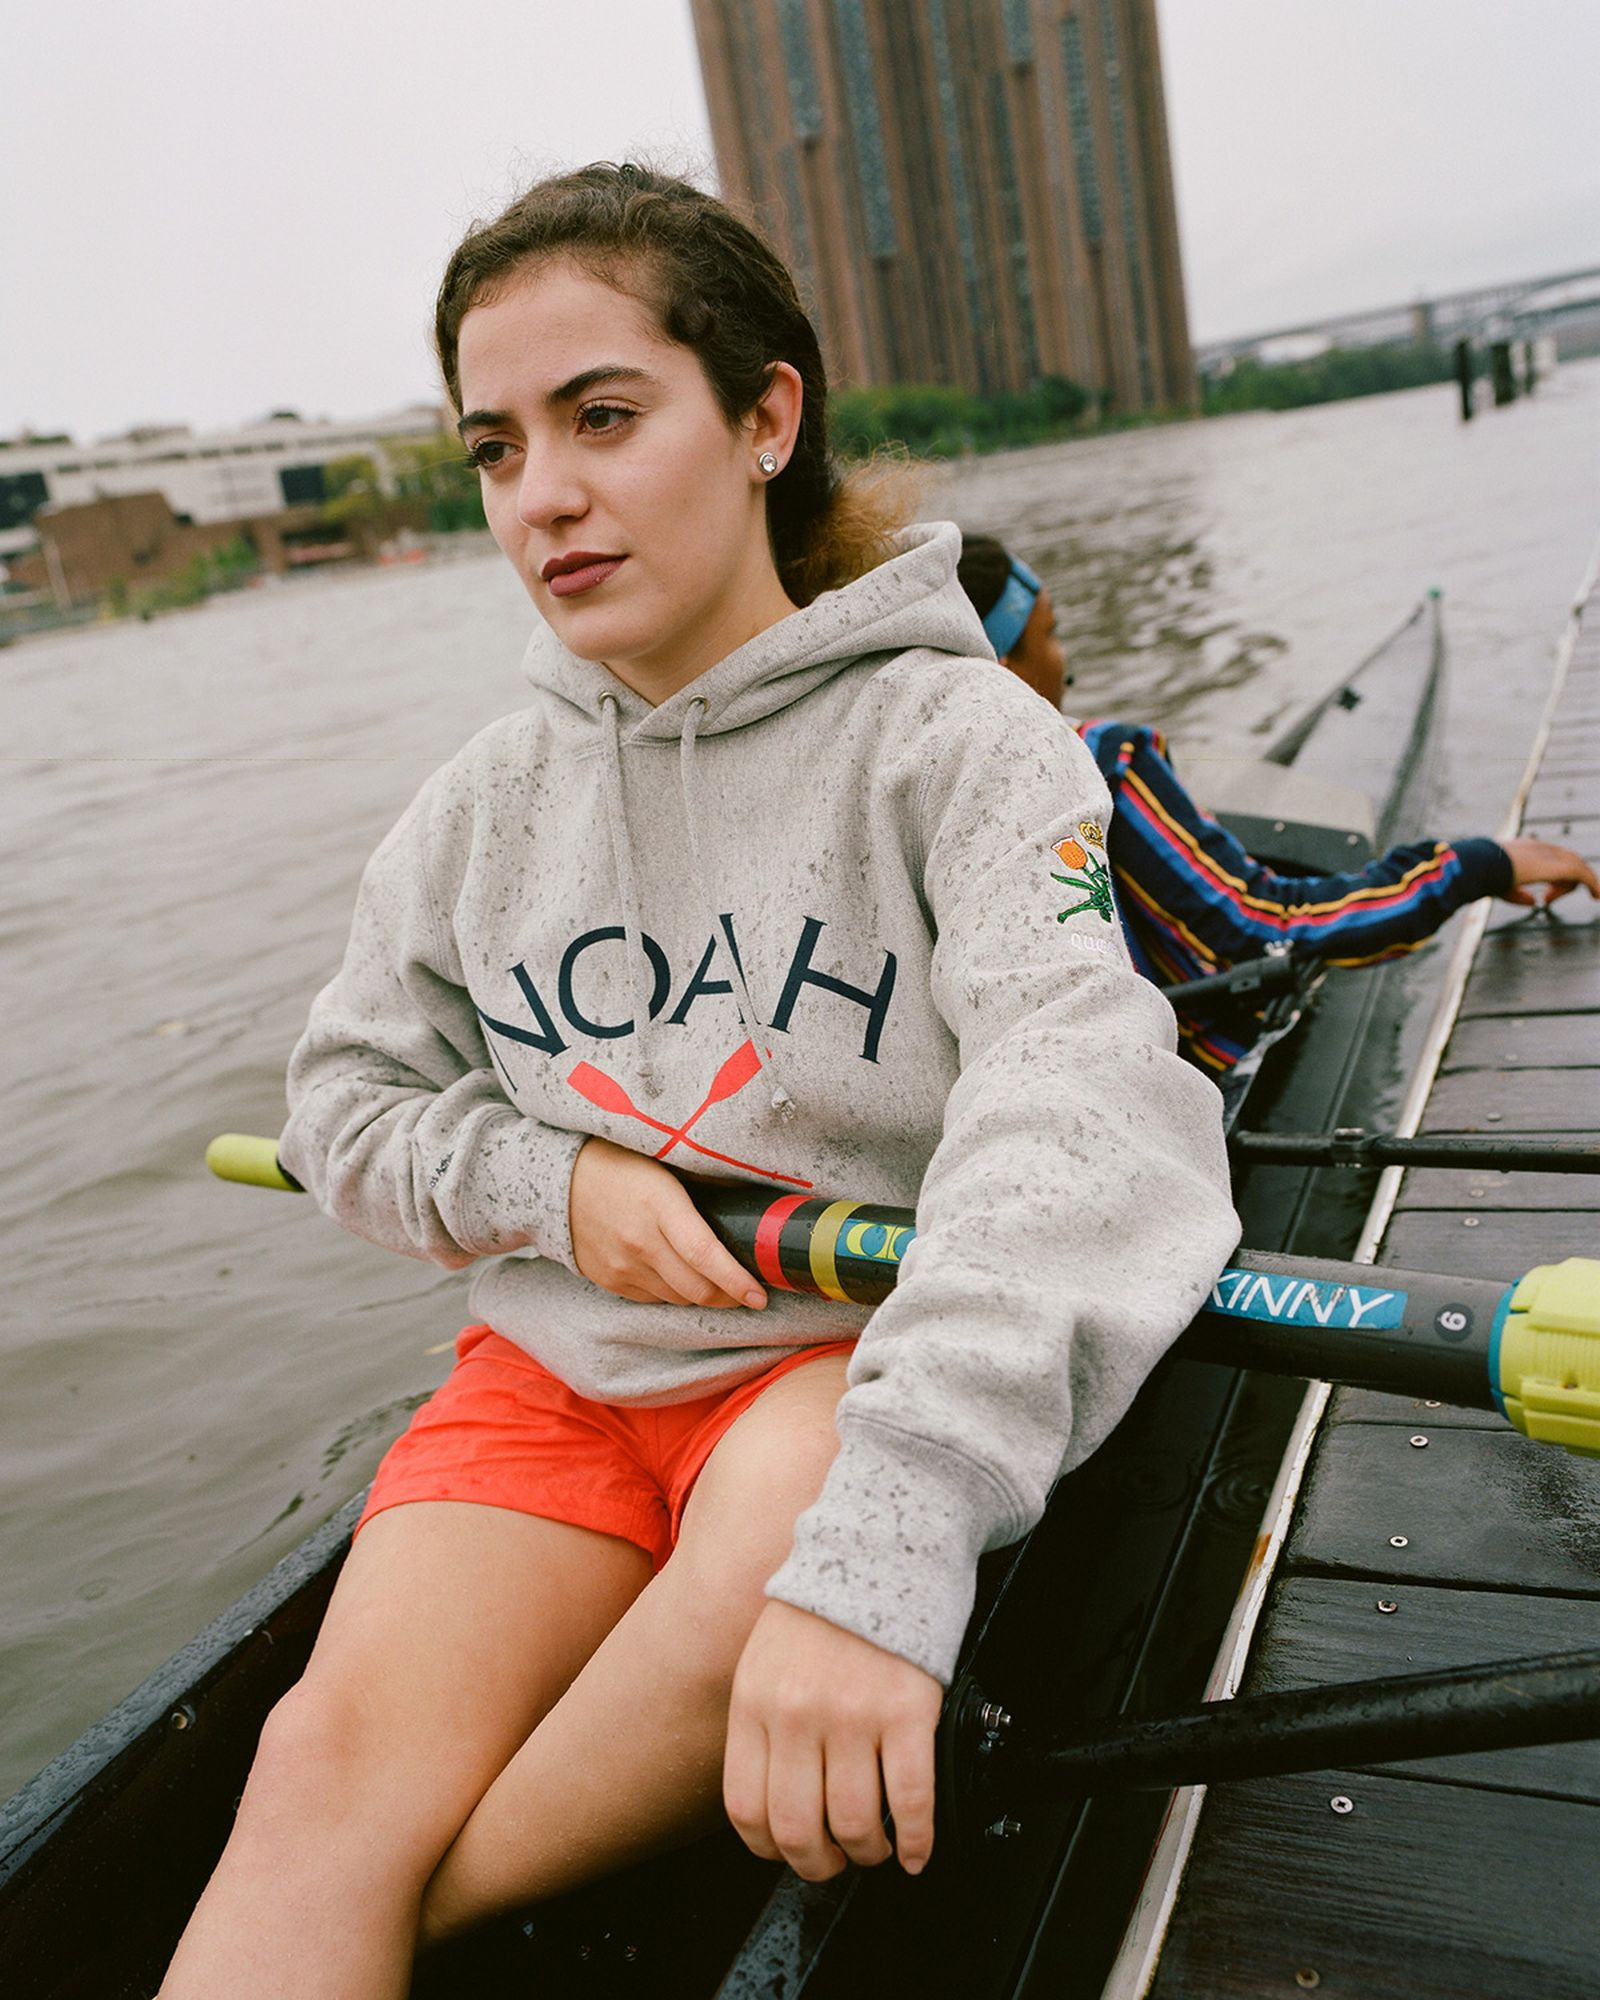 noah-rowing-blazers-collection-16